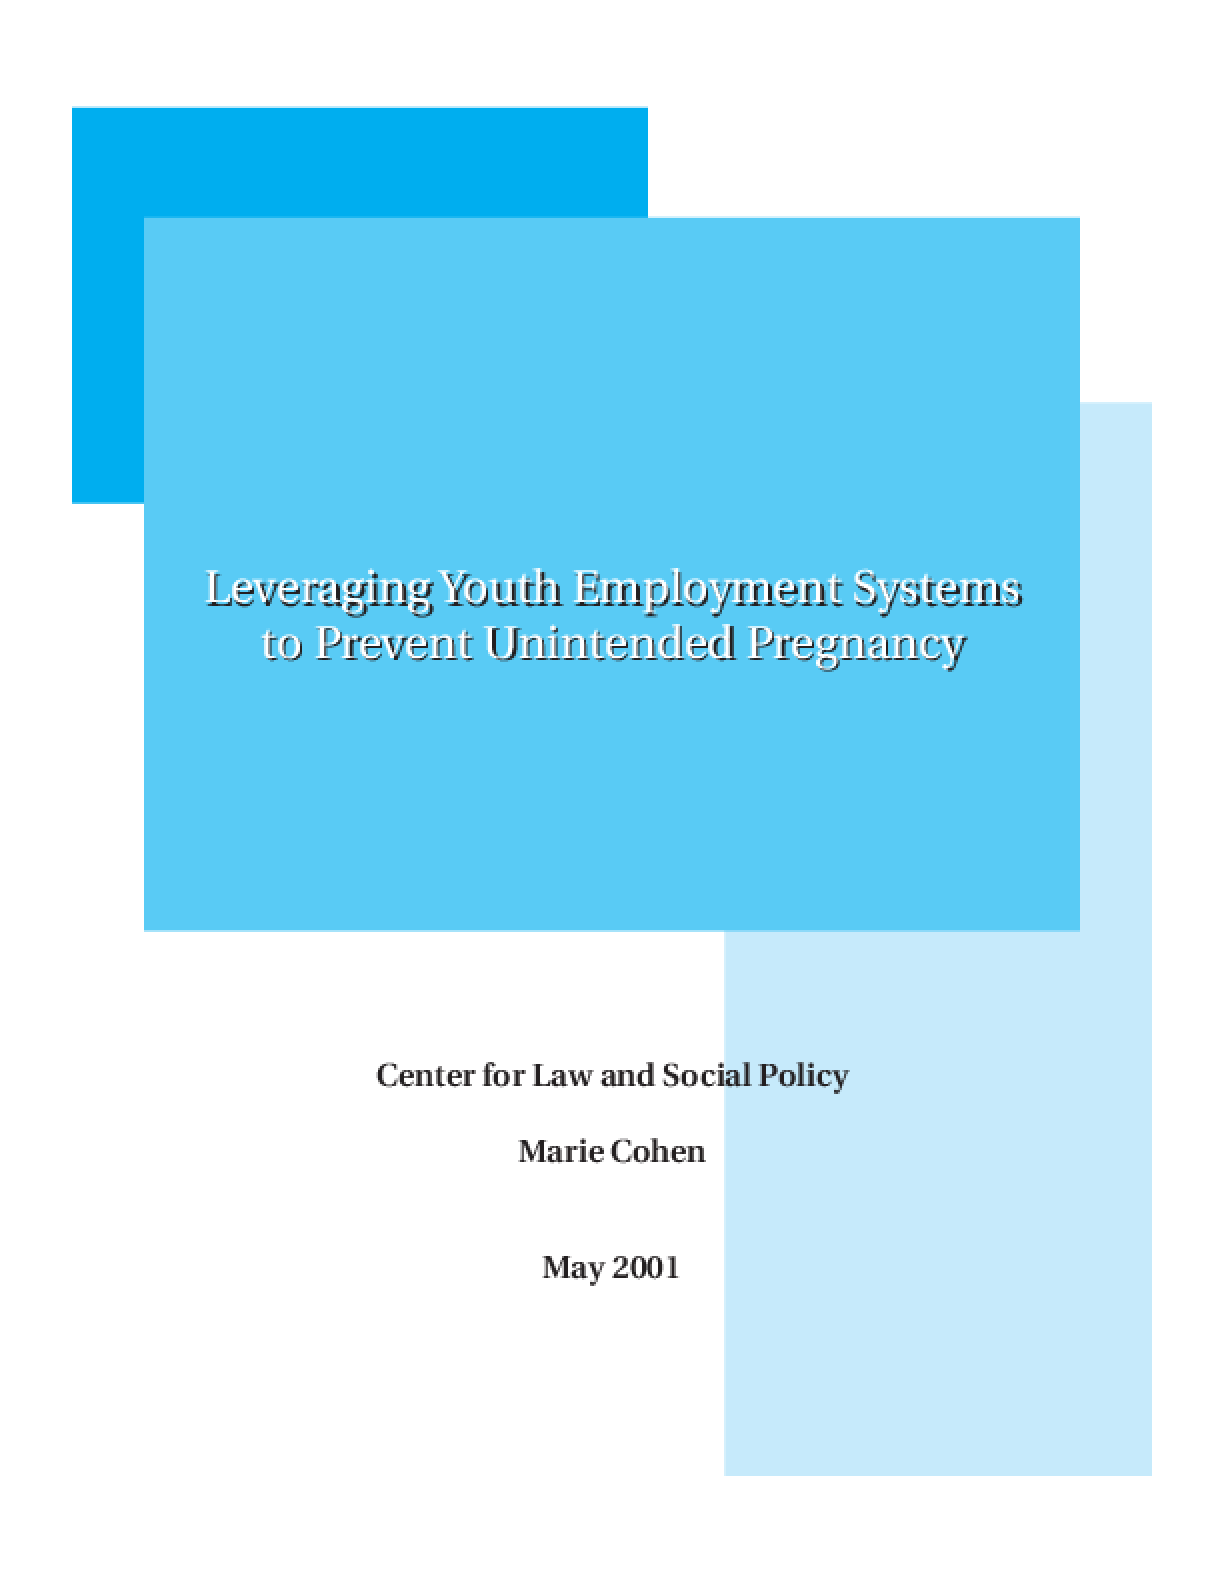 Leveraging Youth Employment Systems to Prevent Unintended Pregnancy